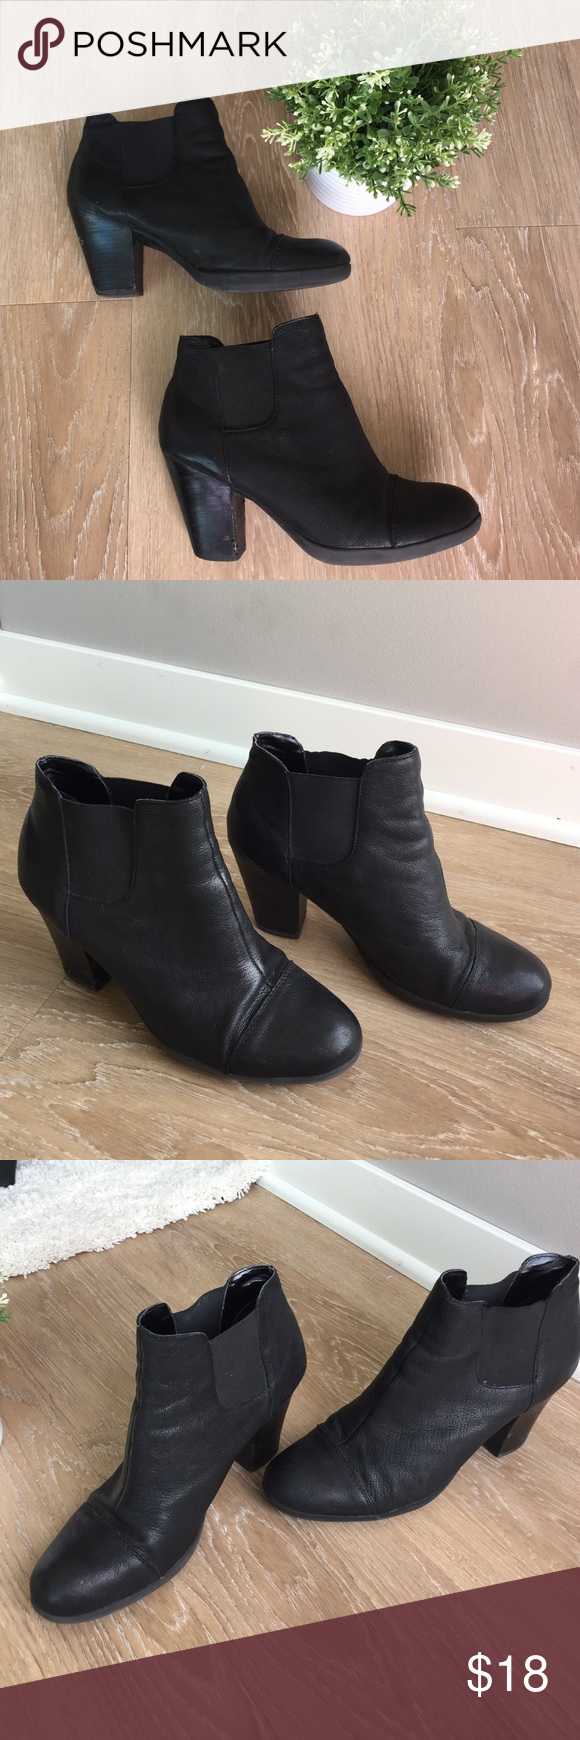 Black booties! In good condition! A few scuffs on the heels. 3 1/2 inches tall. 10% off bundle of 3 or more items! No trades. Smoke free home. Items also on merc! Make me an offer! ❤️😄 Kenneth Cole Reaction Shoes Ankle Boots & Booties